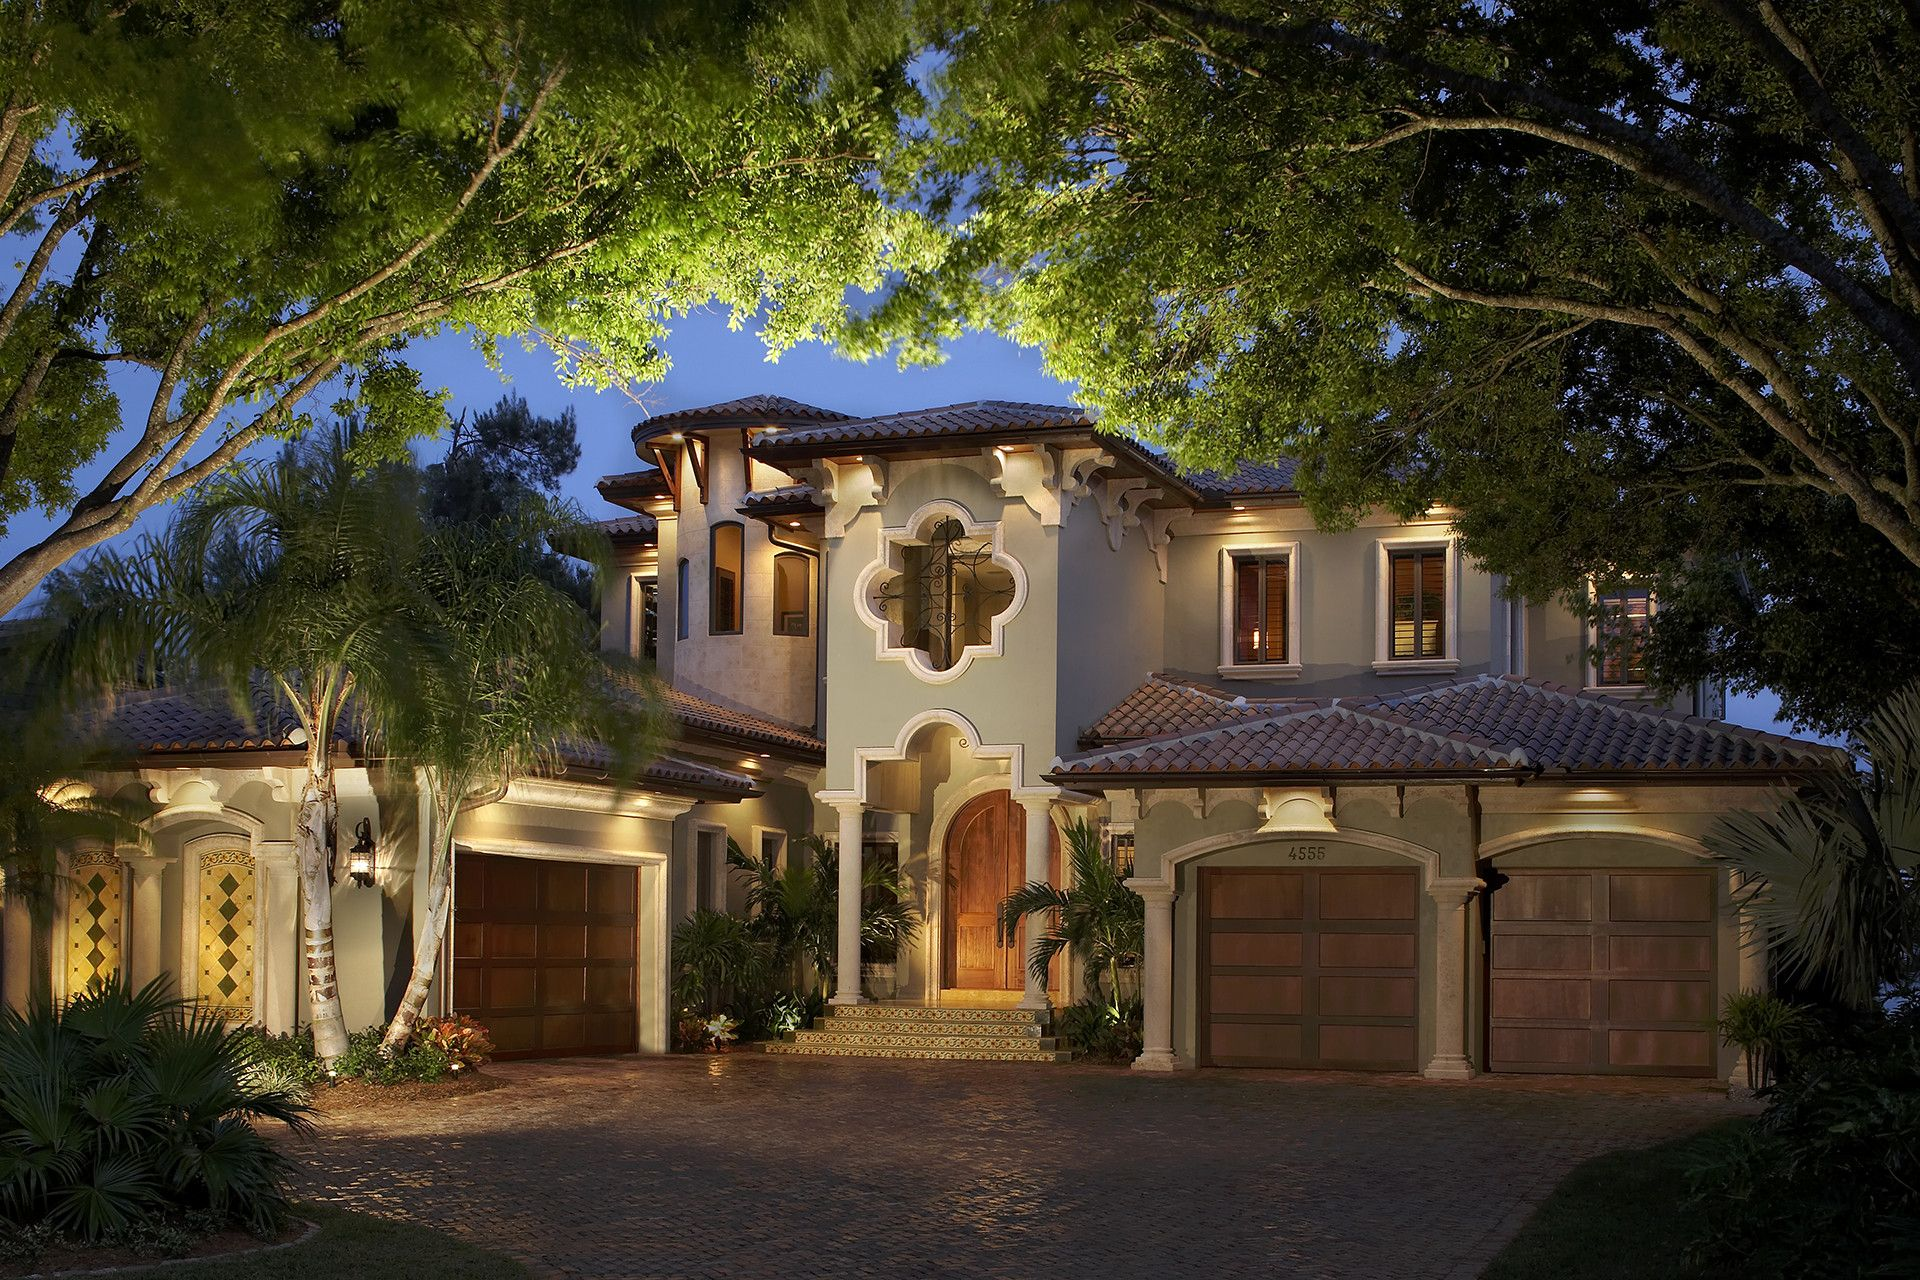 Mediterranean Style Home by Design Styles Architecture - Front ... on front house elevation design, foyer design ideas, kitchen design ideas, long front porch landscaping ideas, front porch design ideas, education design ideas, bush house front ideas, front lawn design ideas, front yard landscaping, theatre design ideas, garden design ideas, front of landscaping ideas, stage design ideas, shell design ideas, tri level home front stoop ideas, dance design ideas, front exterior home designs, crew design ideas, makeup design ideas, condo entrance design ideas,